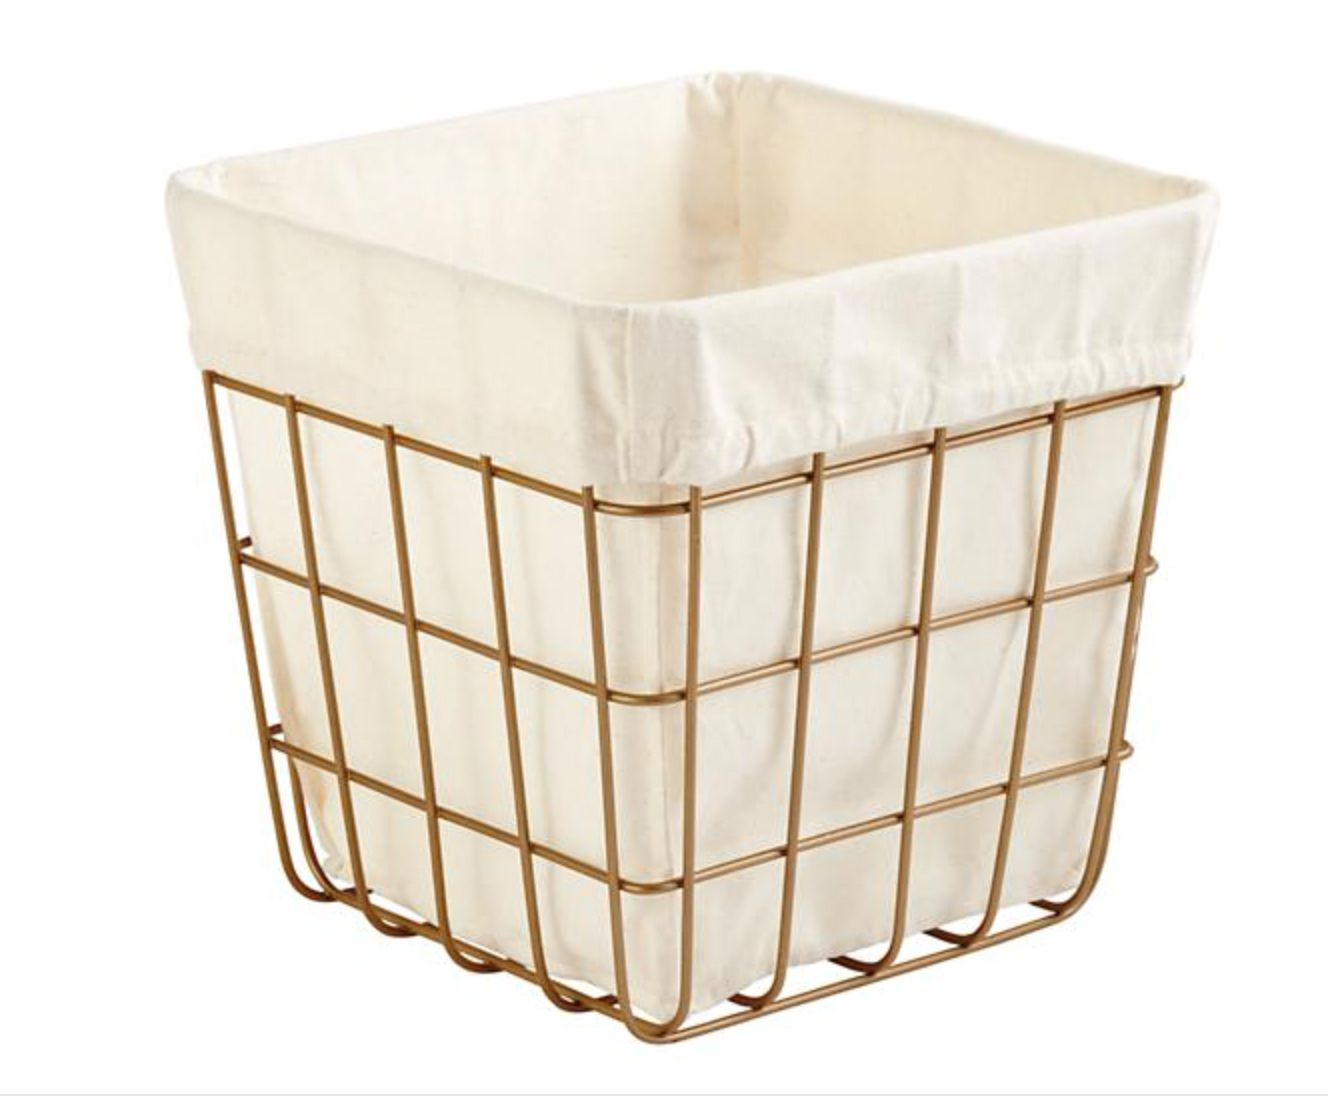 Gold Index Cube Bin 11 Wx11 Dx11 H 25 Cube Storage Cube Storage Bins Kids Storage Bins